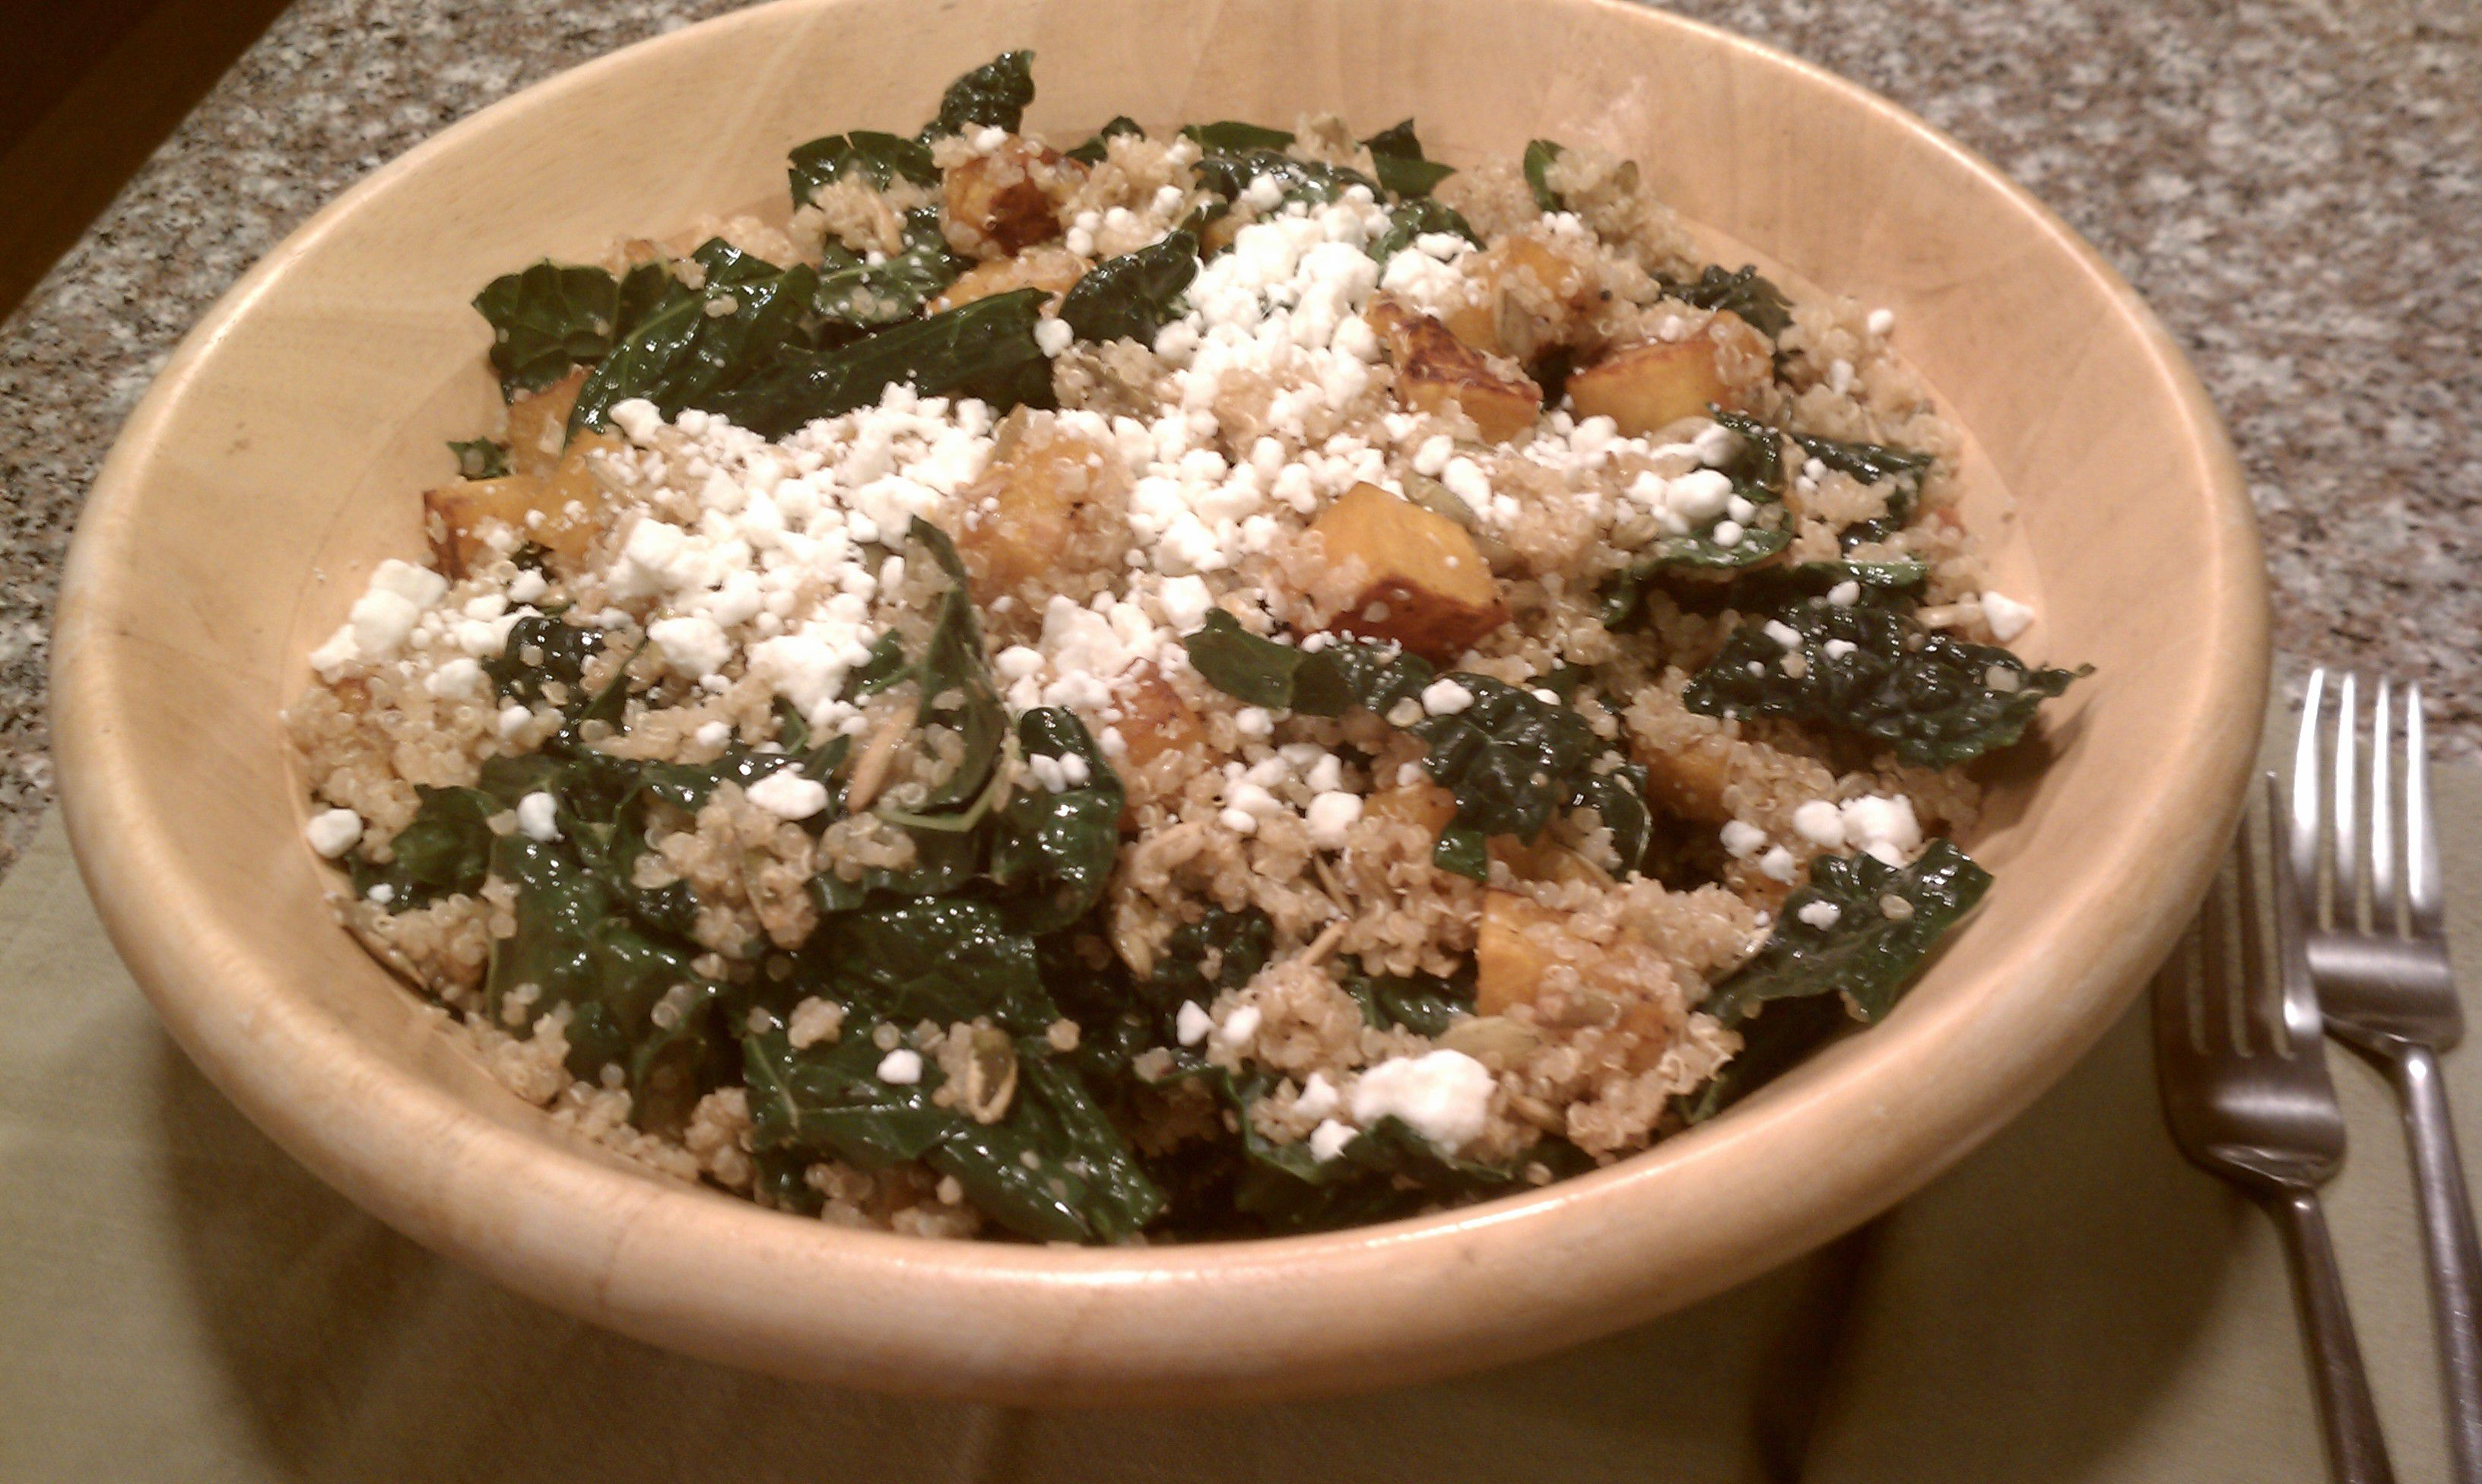 Warm Roasted Butternut Squash, Quinoa and Kale Salad + Crumbled Goat Cheese